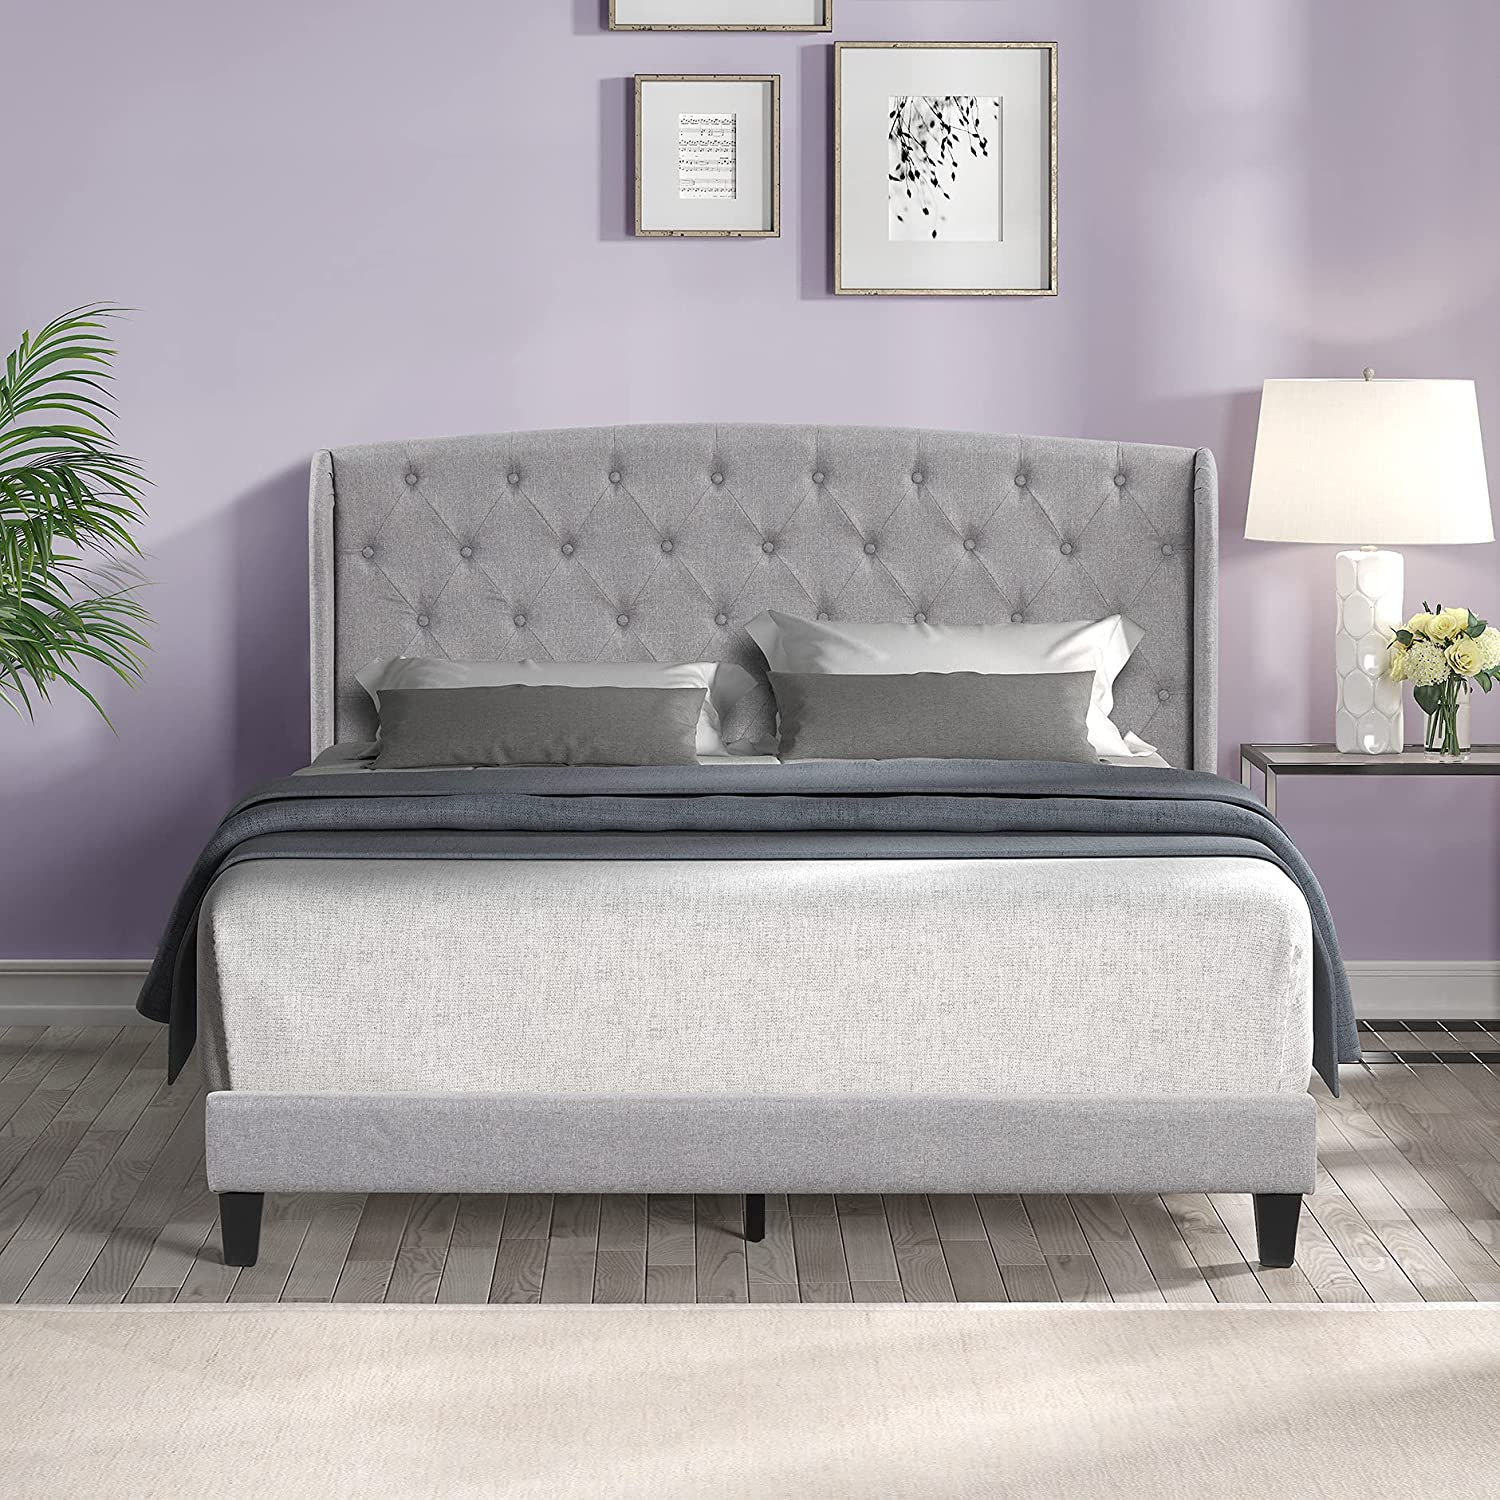 Max 49% OFF Upholstered Platform Bed Frame Lowest price challenge Mattress Plywood with Founation S